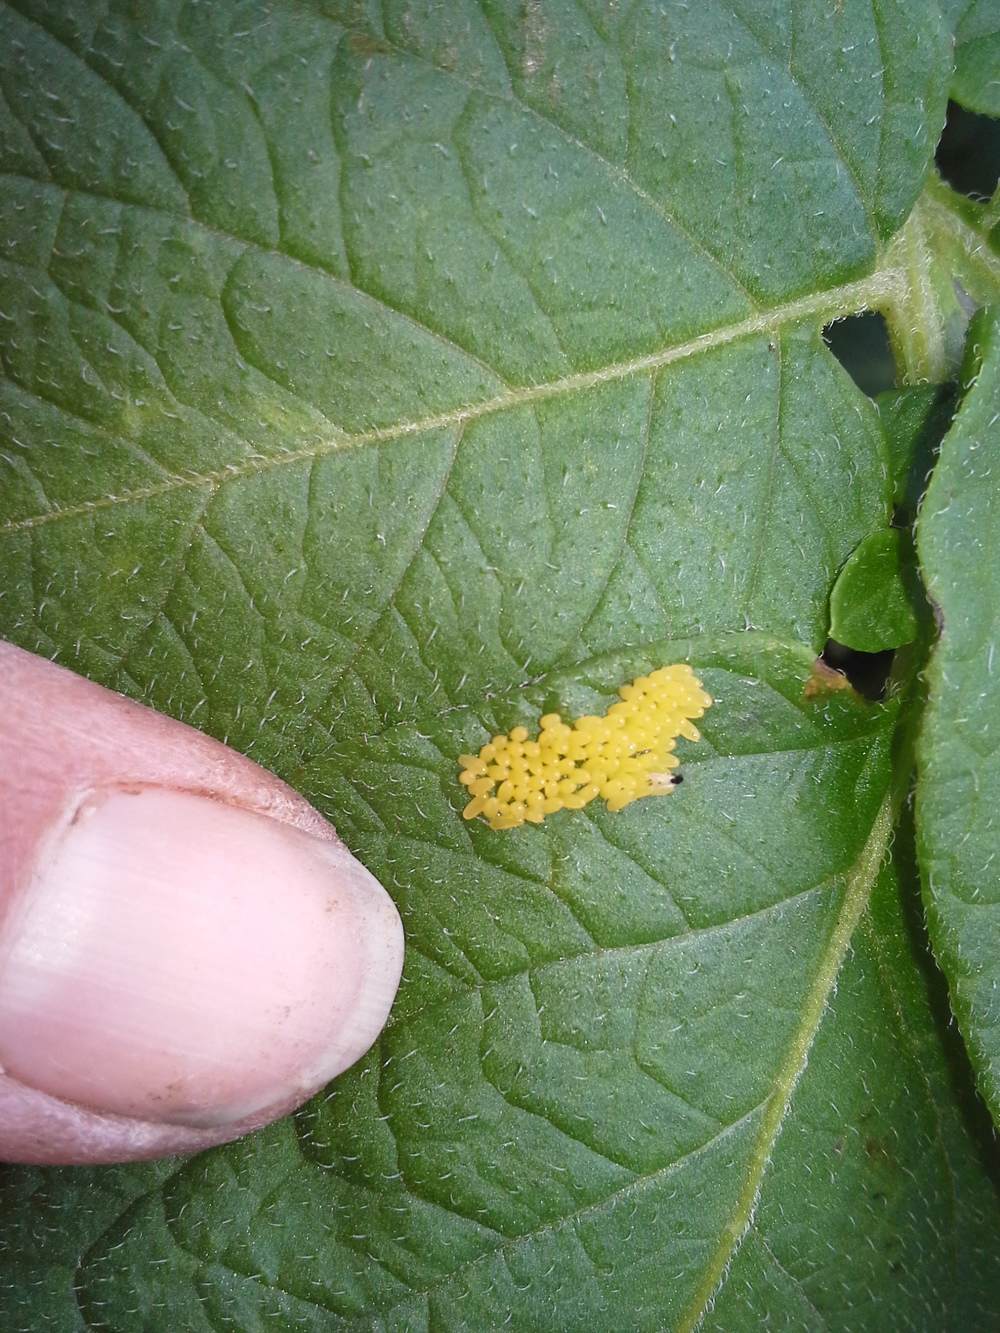 Ladybug eggs laid on a potato leaf.